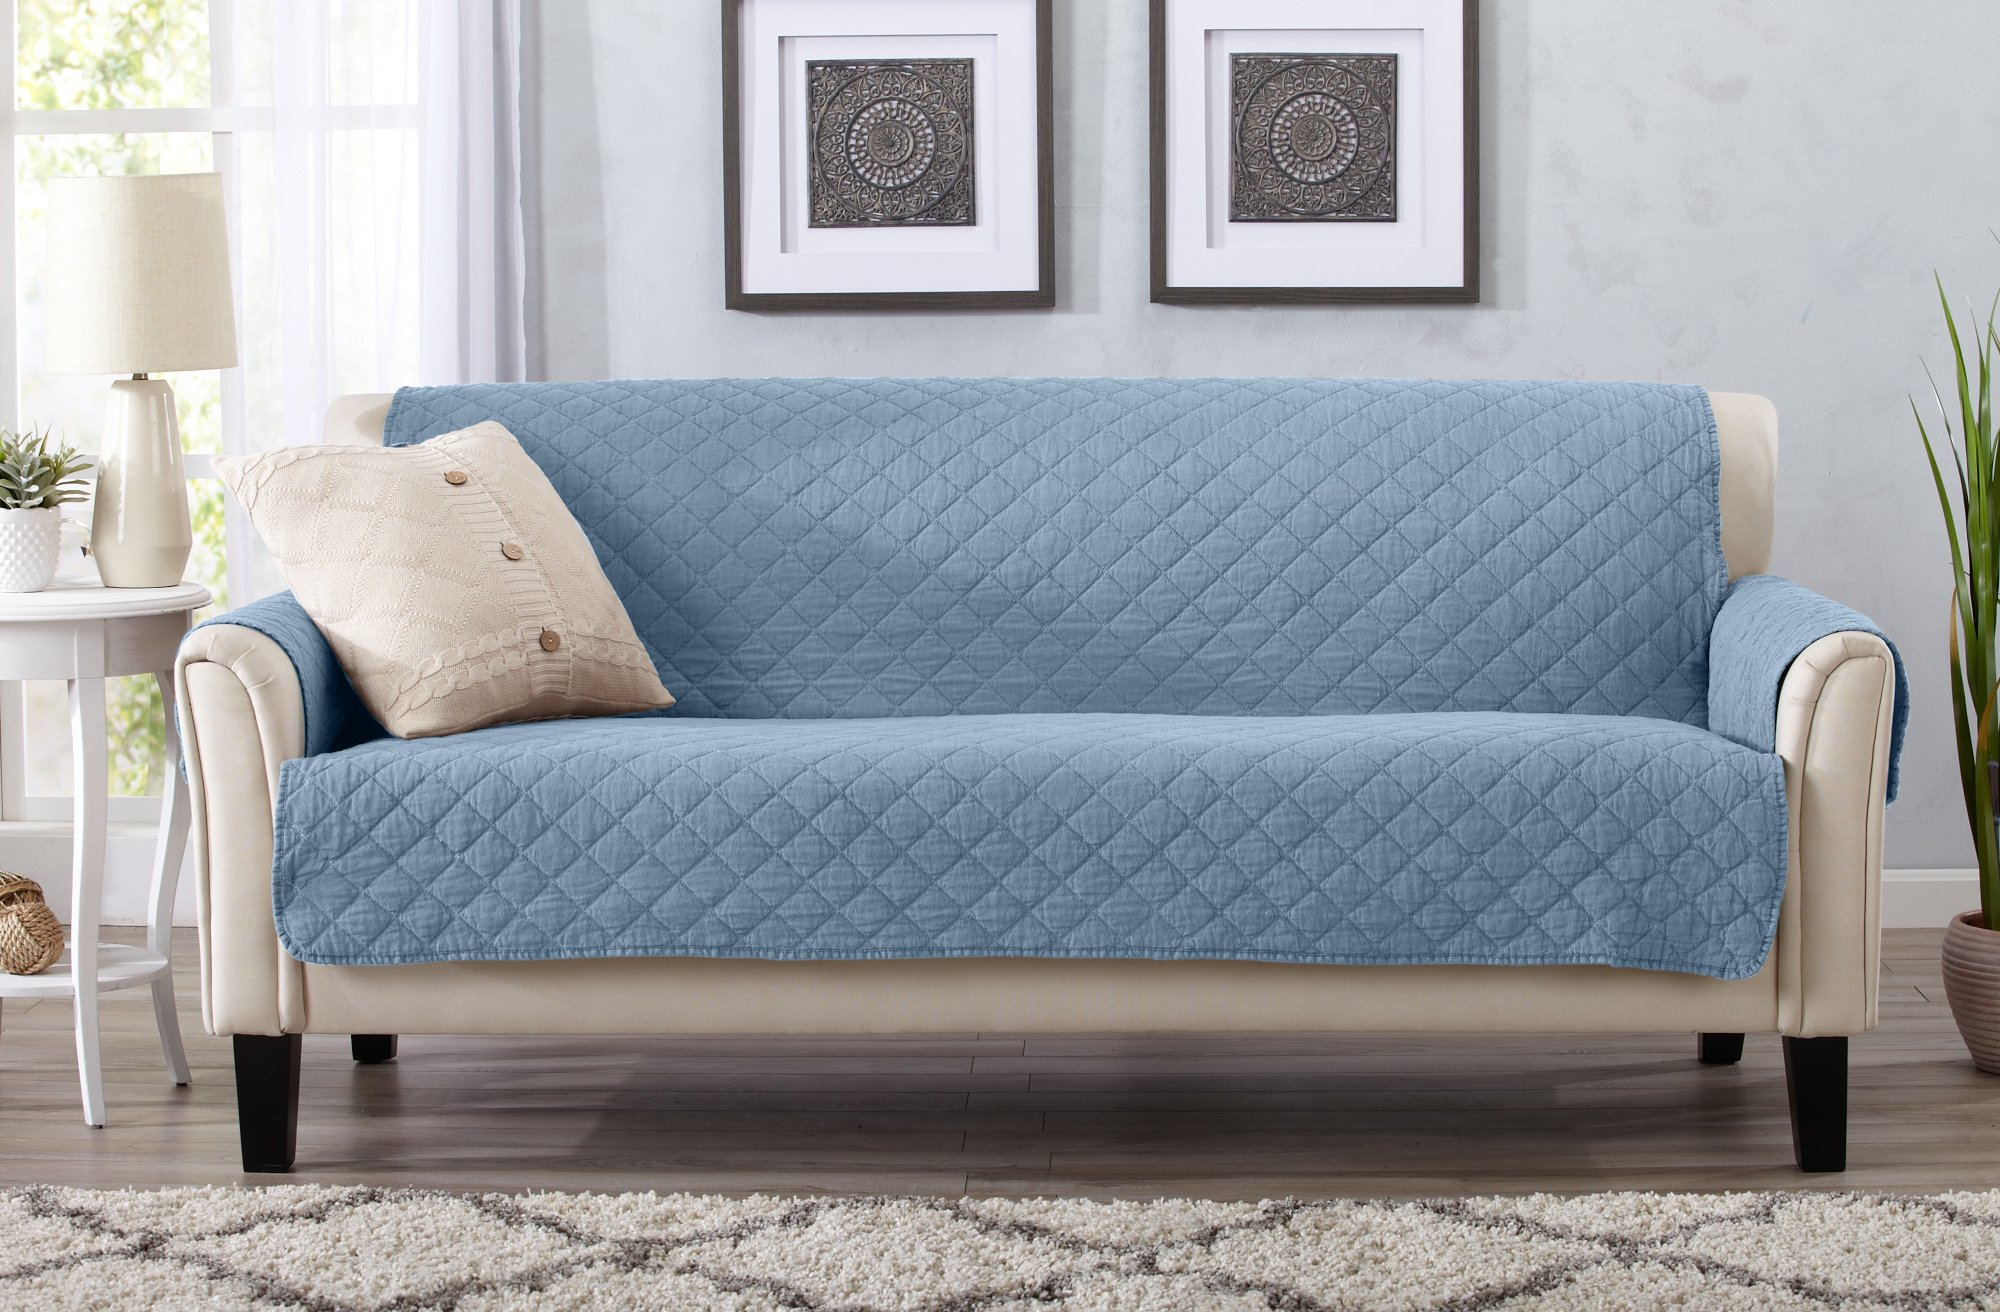 Great Bay Home Deluxe Stonewashed Stain Resistant Furniture Protector in Solid Colors. Laurina Collection By Brand. (Sofa, Delphium Blue)